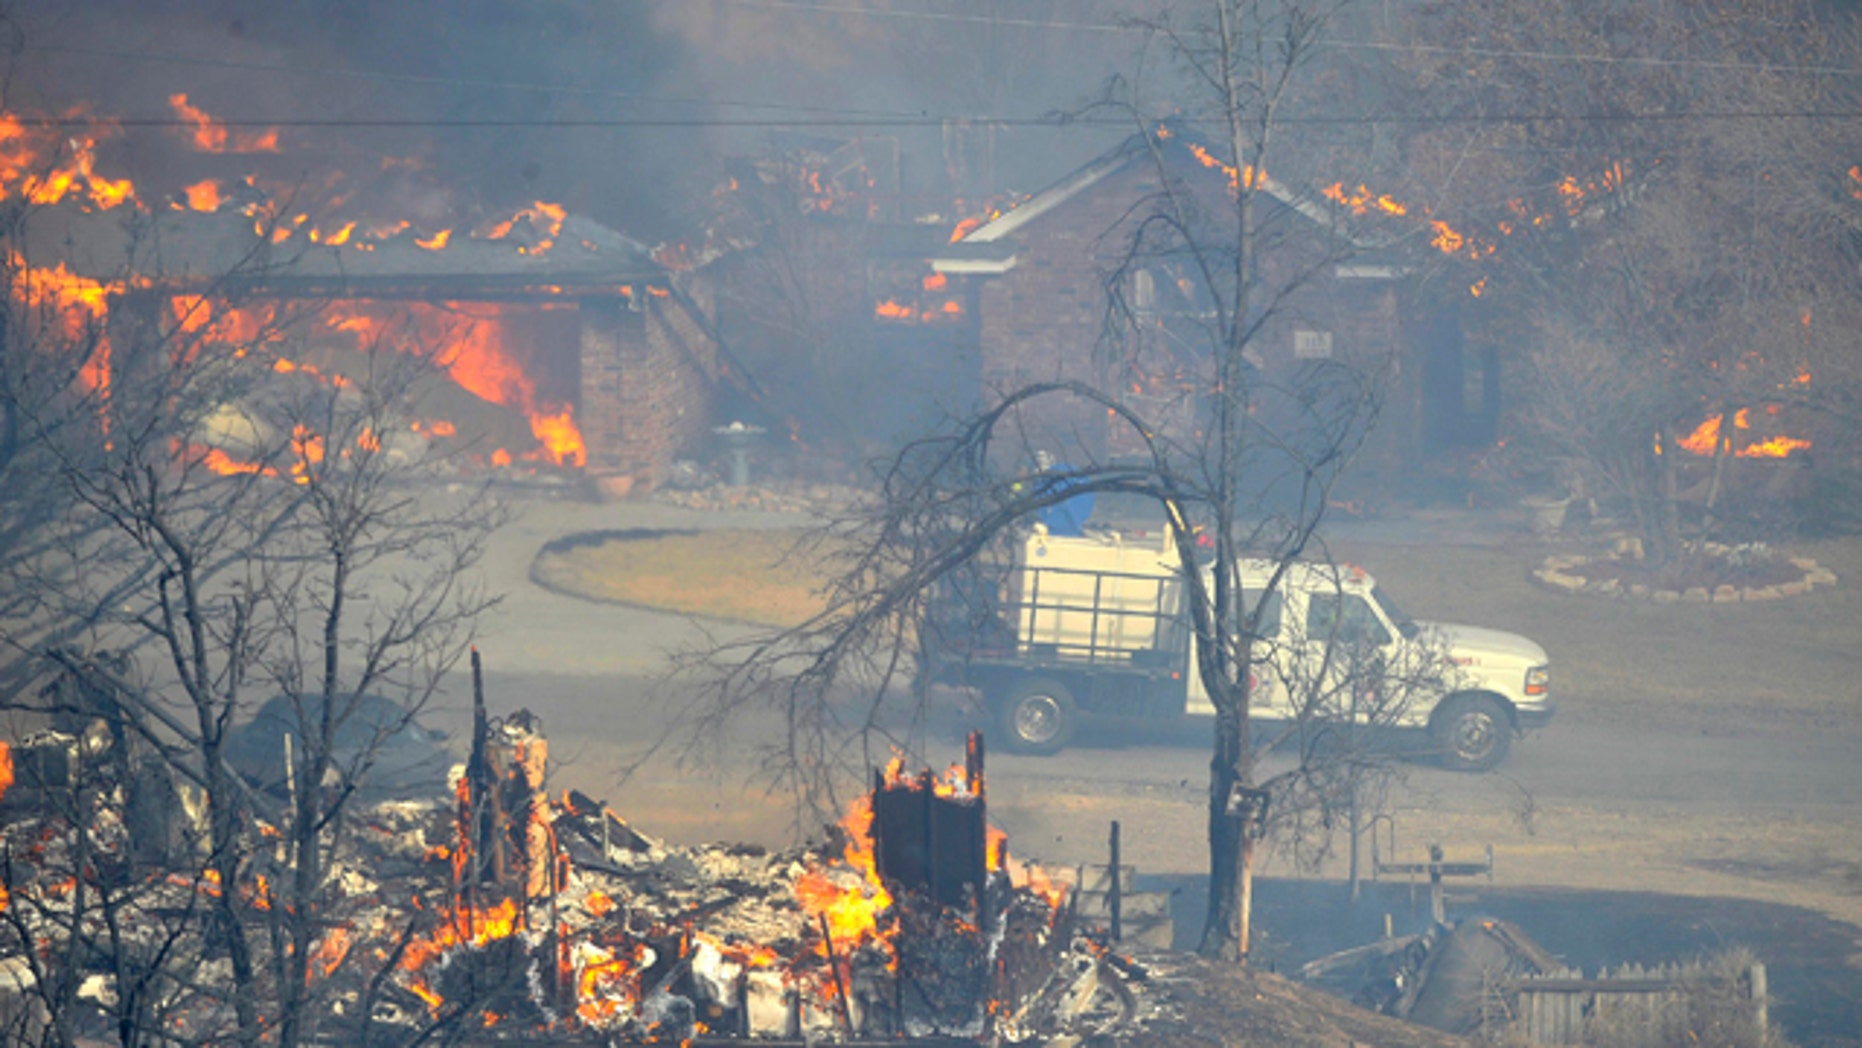 Feb. 27, 2011: Two homes in the Lake Tanglewood area in Texas burn to the ground as emergency personnel can do nothing but watch. Texas Forest Service spokesman Lewis Kearney said two wildfires joined about five miles south of Amarillo to destroy or damage the almost two dozen homes.